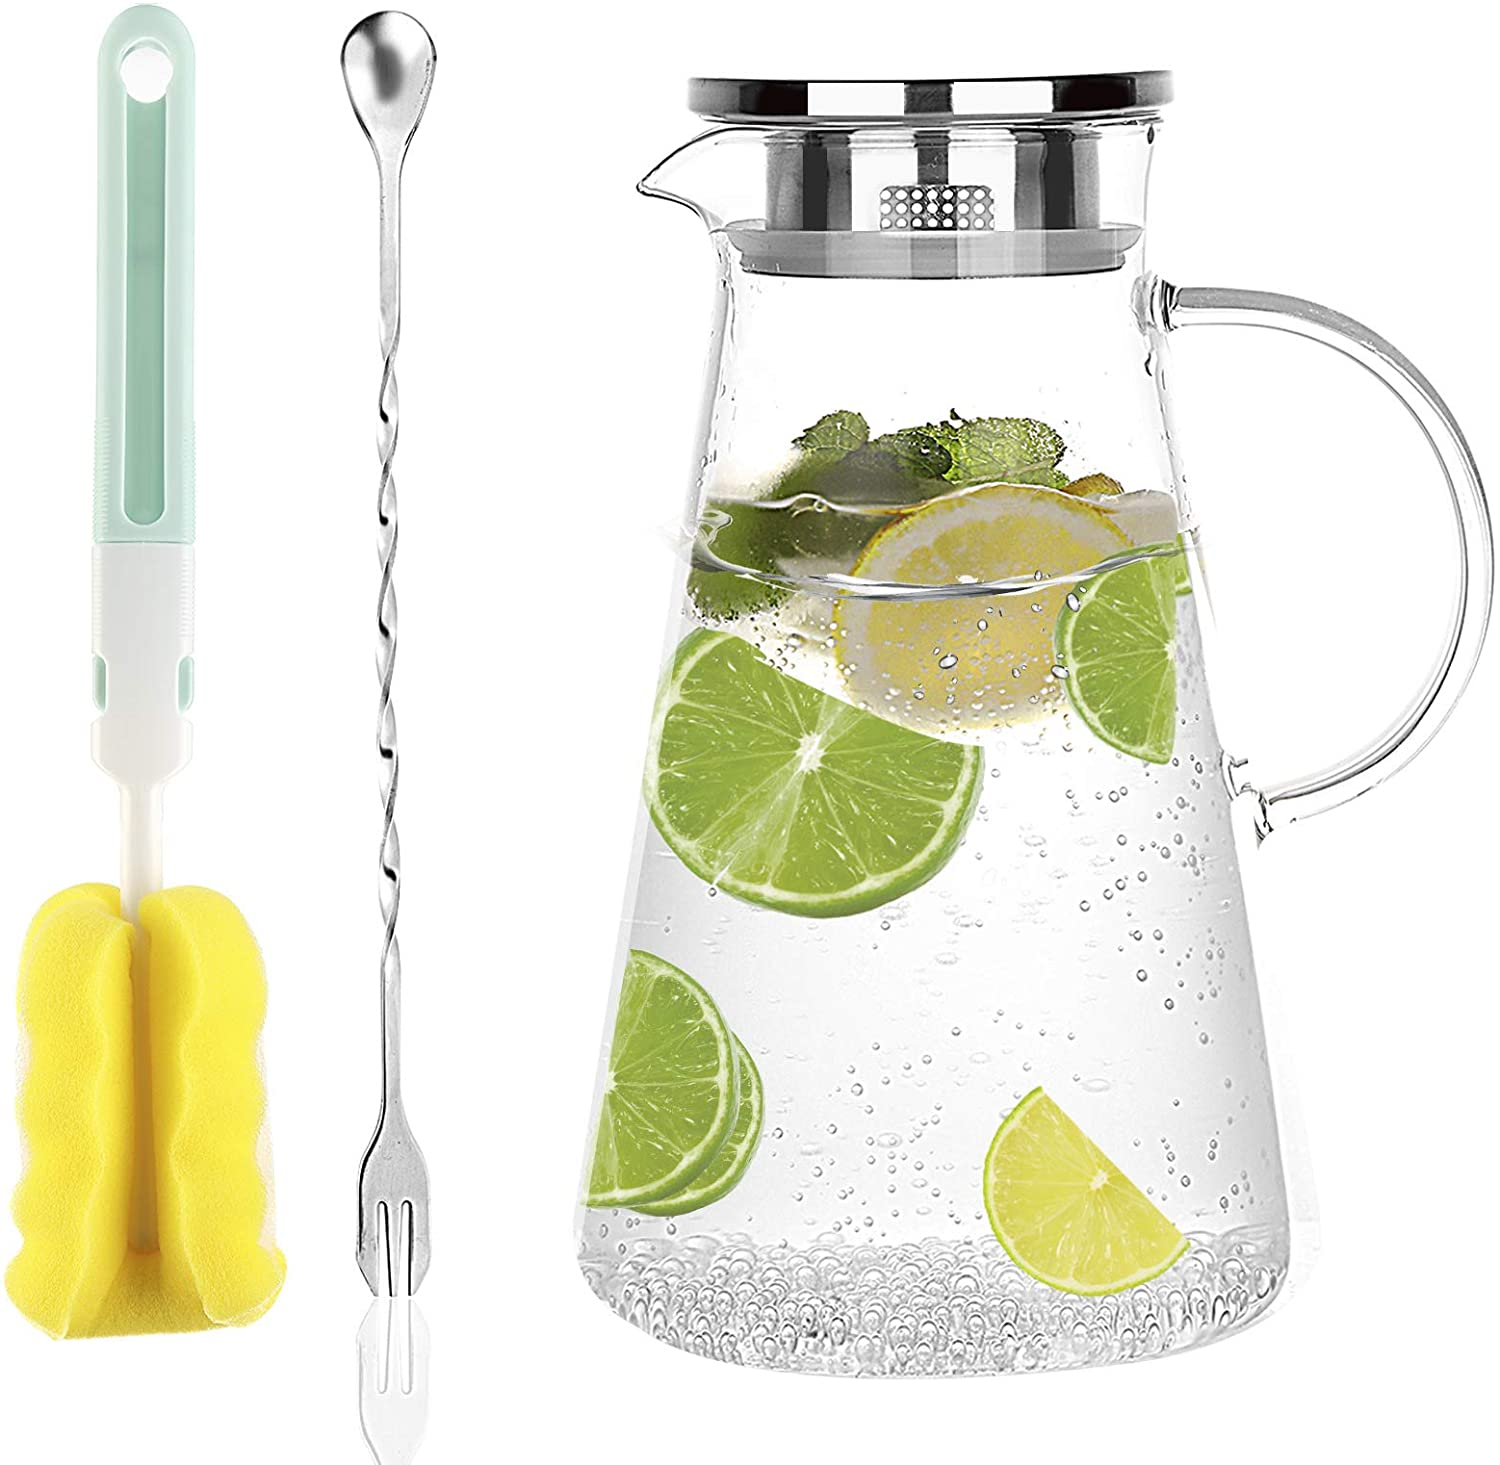 [68oz/2liter] DESIGN·MASTER Premium Borosilicate Glass Pitcher with Handle, Water Jug with Cleaning Brush and Mixing Spoon, Glass Water Carafe with Stainless Lid, Perfect for Hot/Cold Water, Juice.…